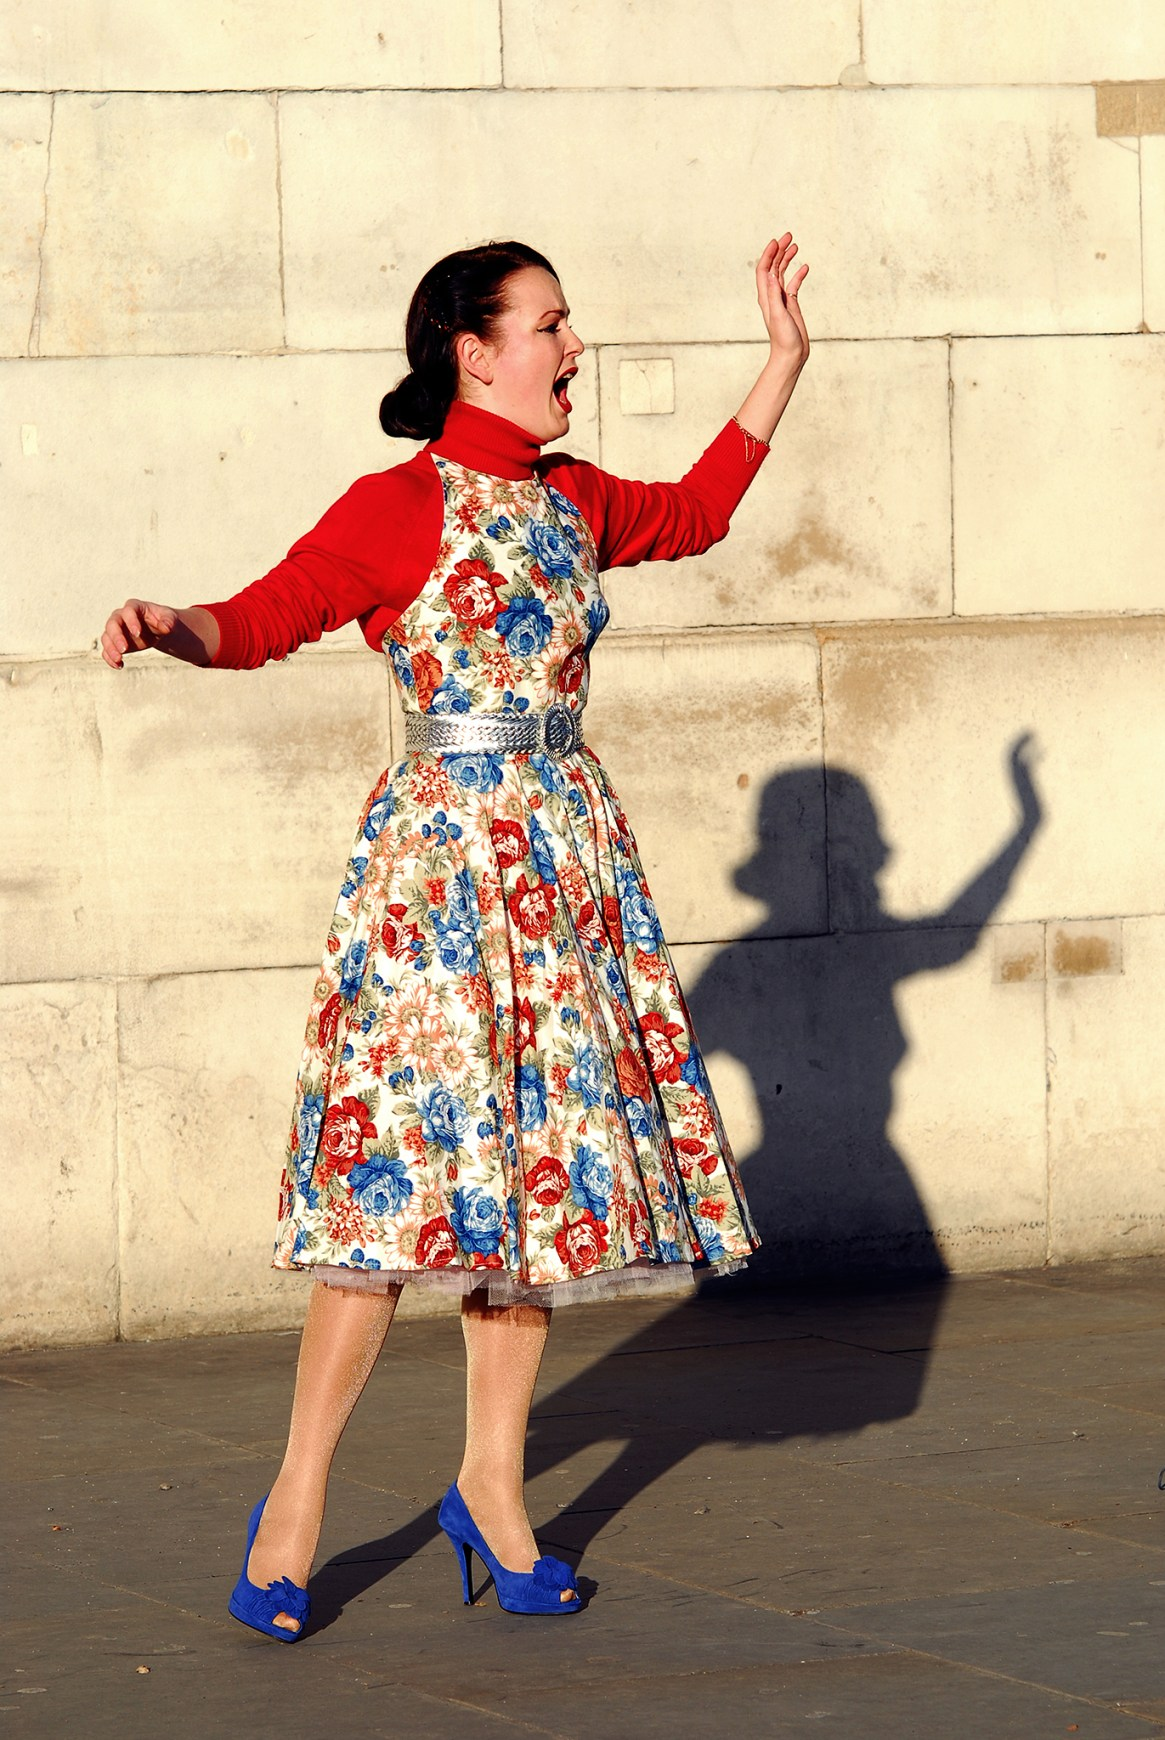 Street performer in red top and flowery dress singing opera on Trafalgar Square, London